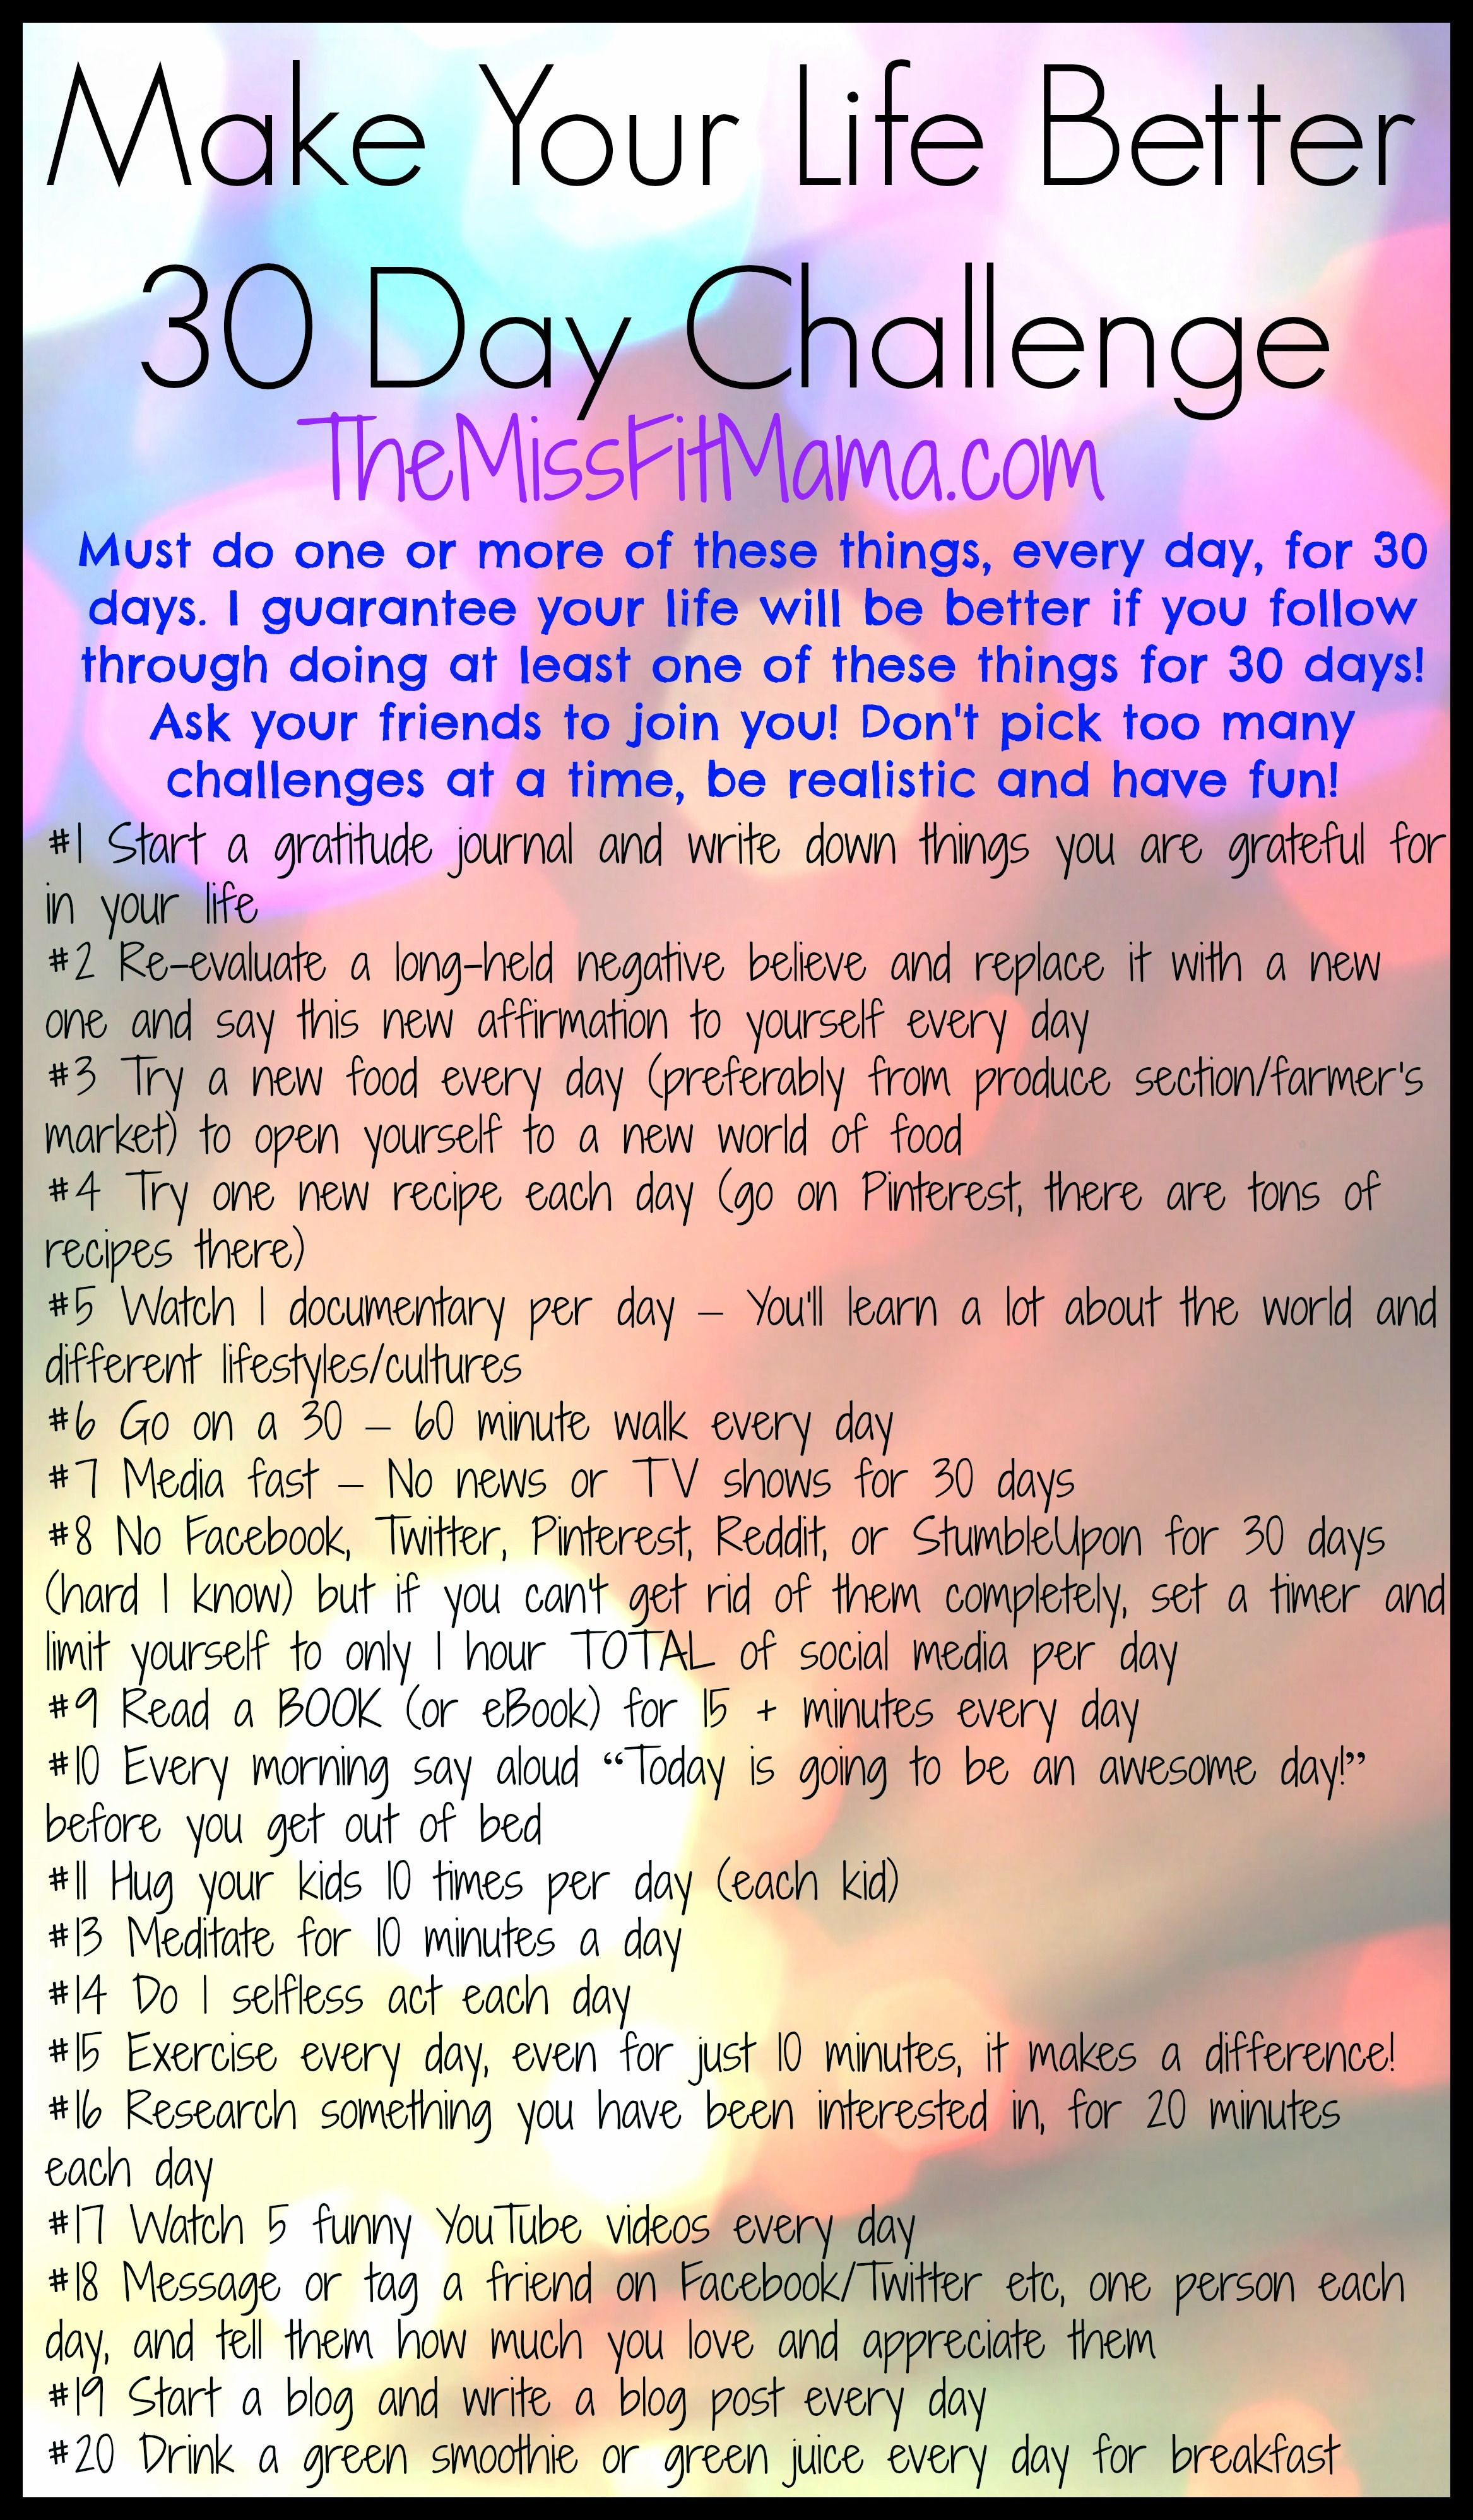 Join The Make Your Life Better 30 Day Challenge